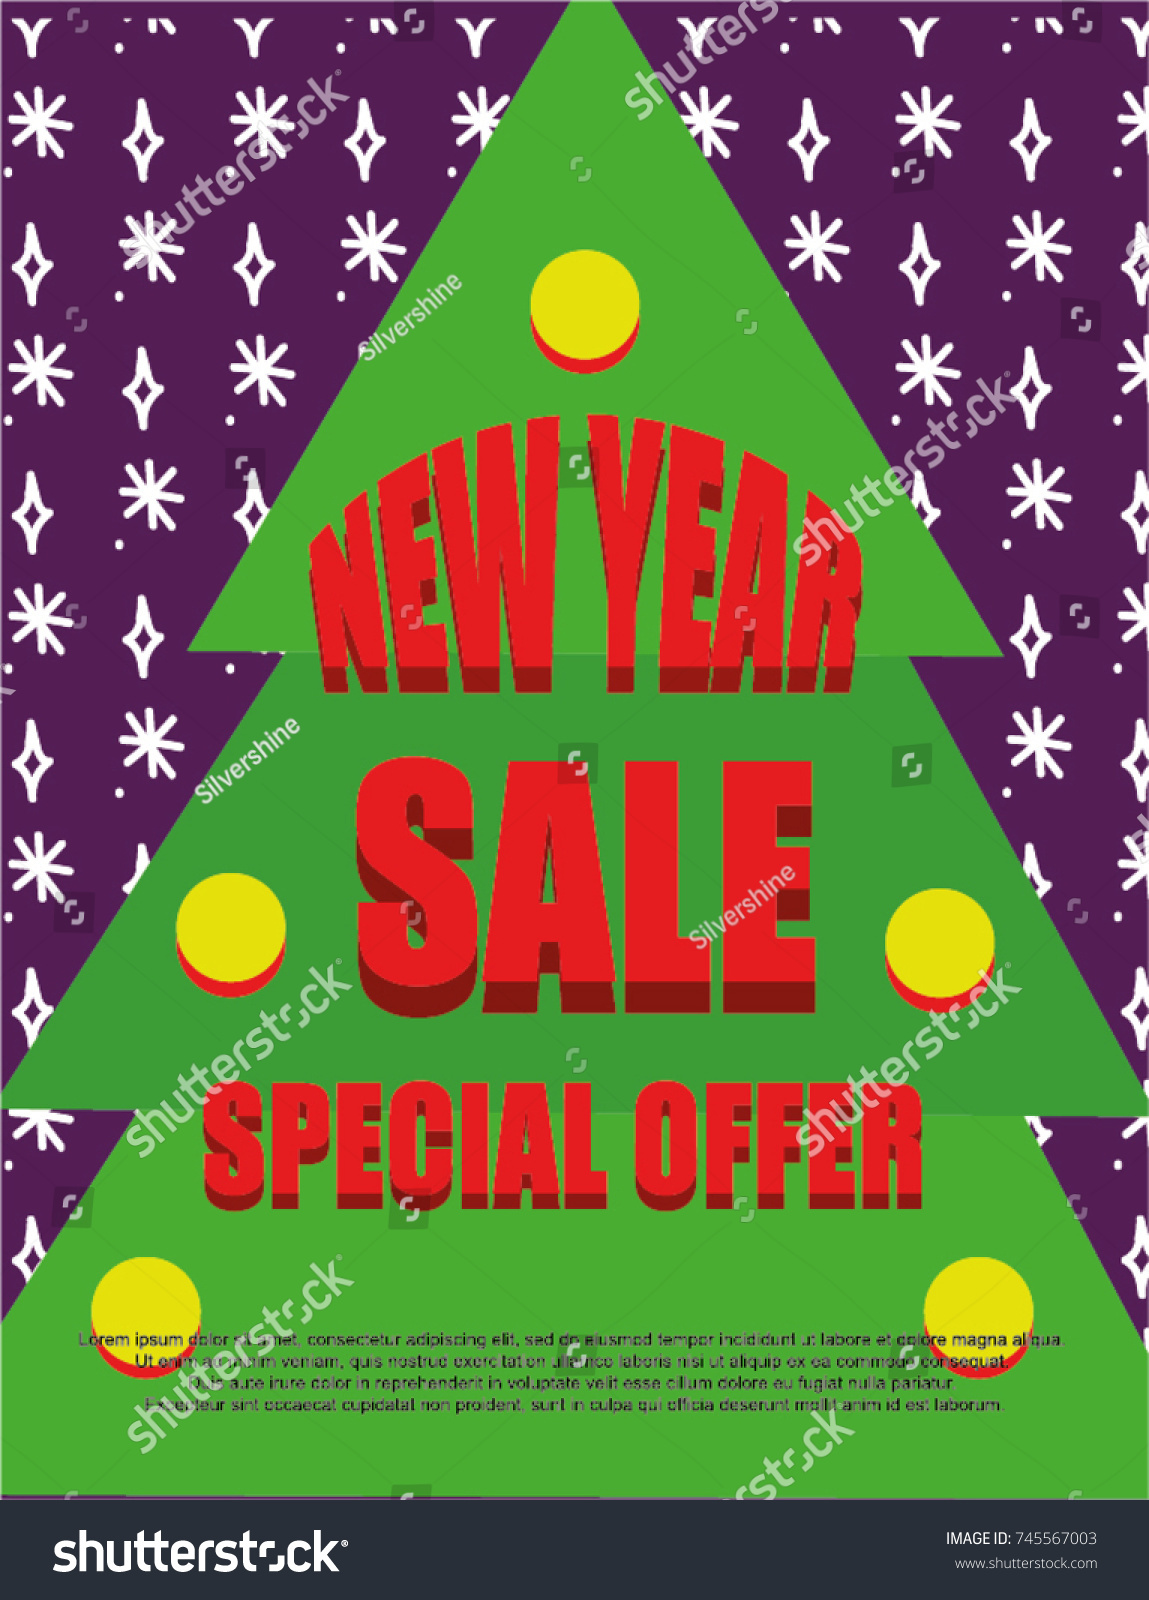 Deals after christmas 2018